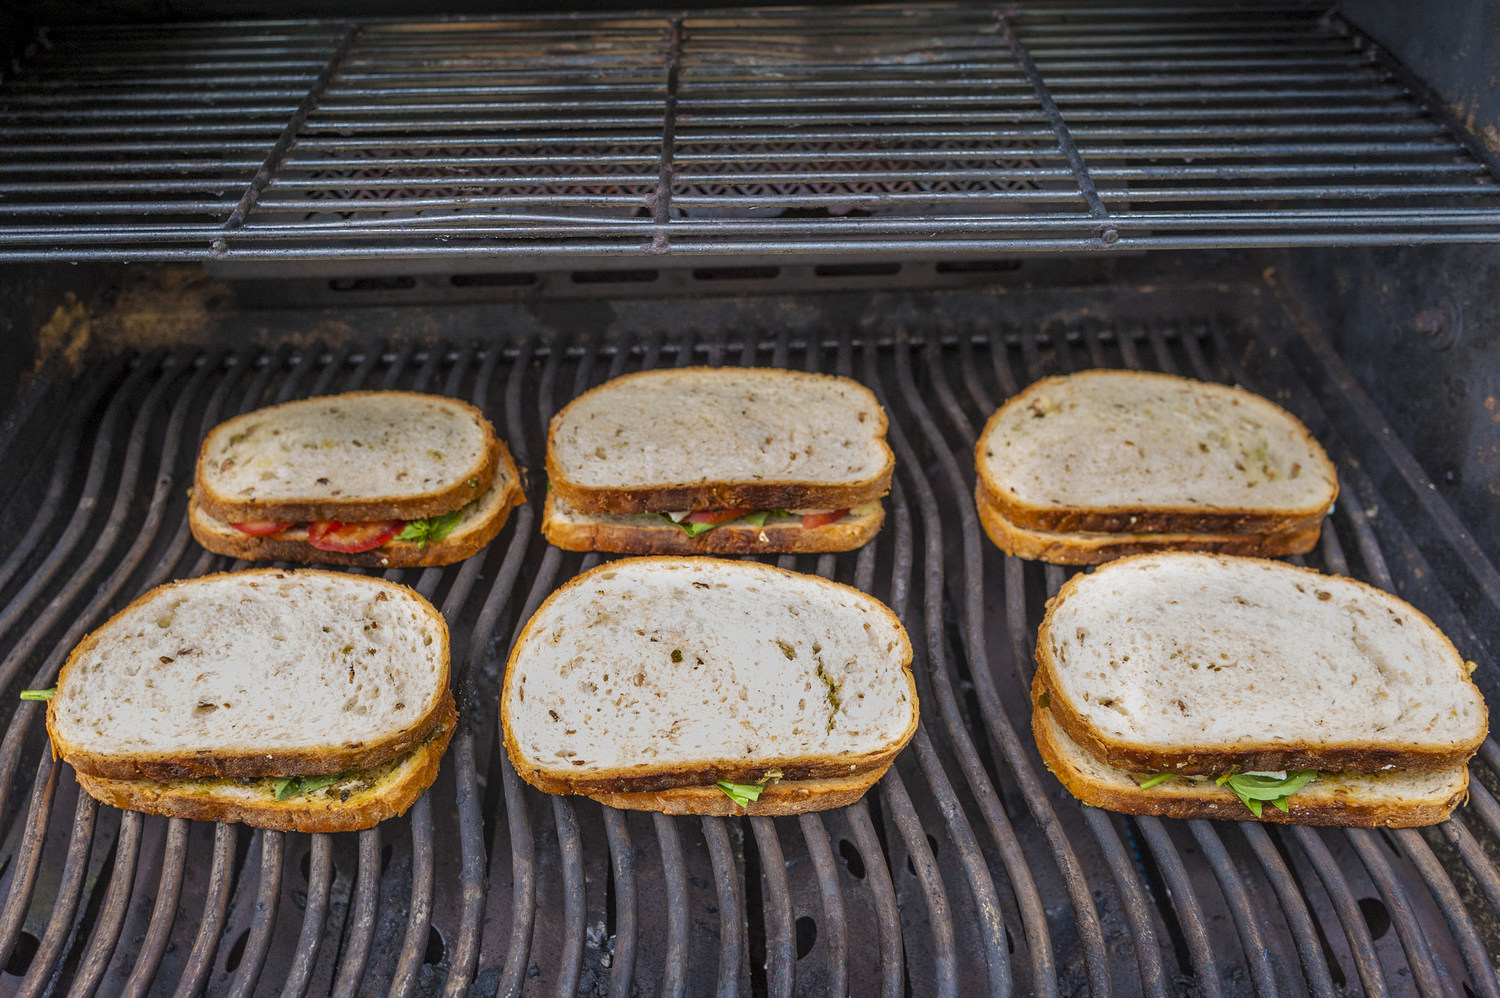 A Persuasive Case for Making Grilled Cheese on an Actual Grill